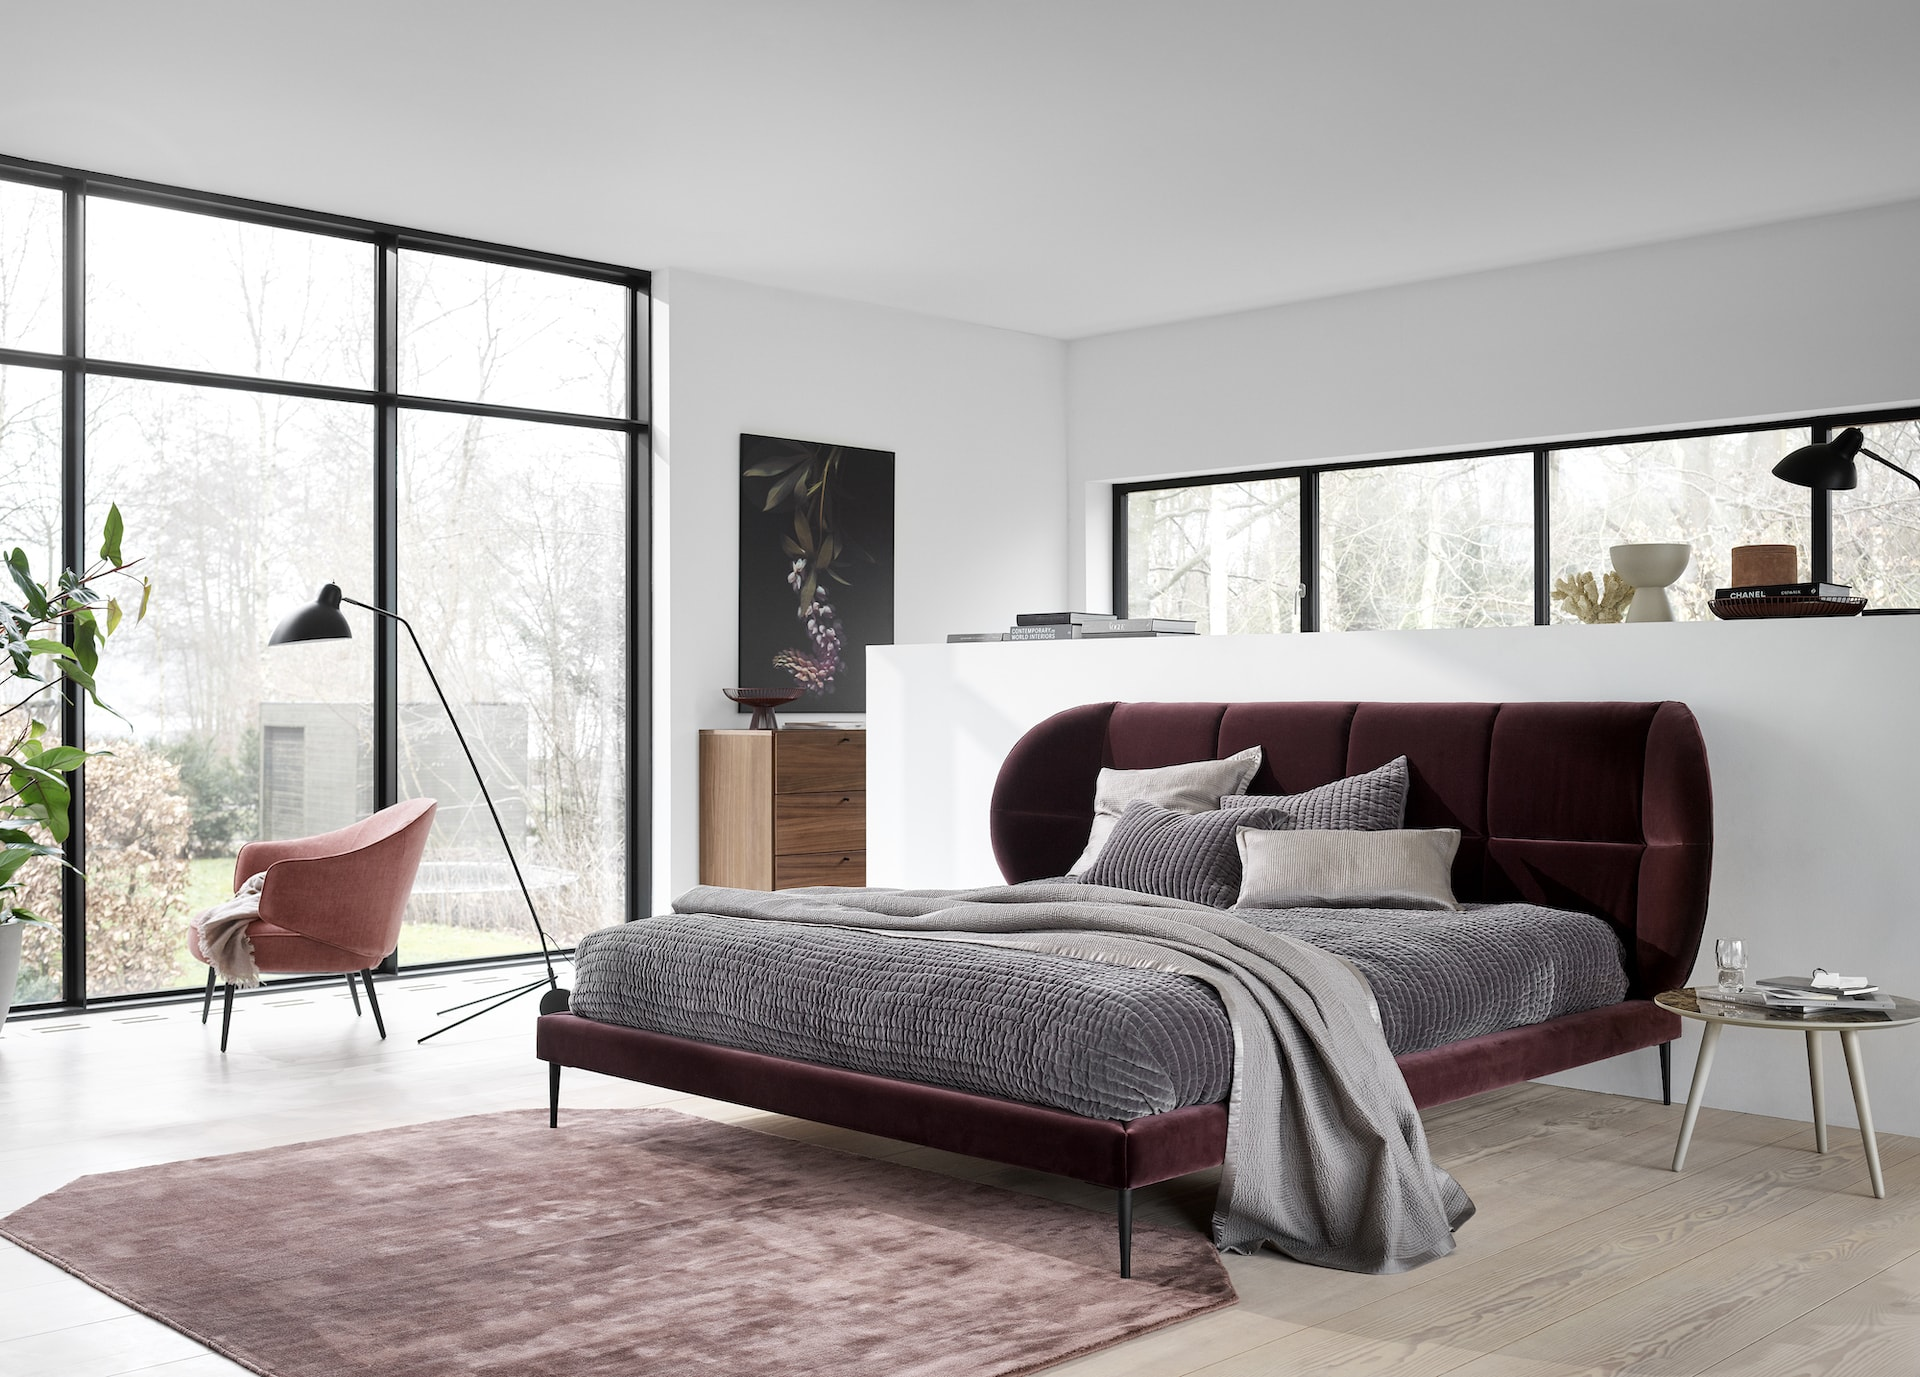 bo-concept-oxford-bed-with-burgundy-upholstery-in-luxe-minimal-bedroom